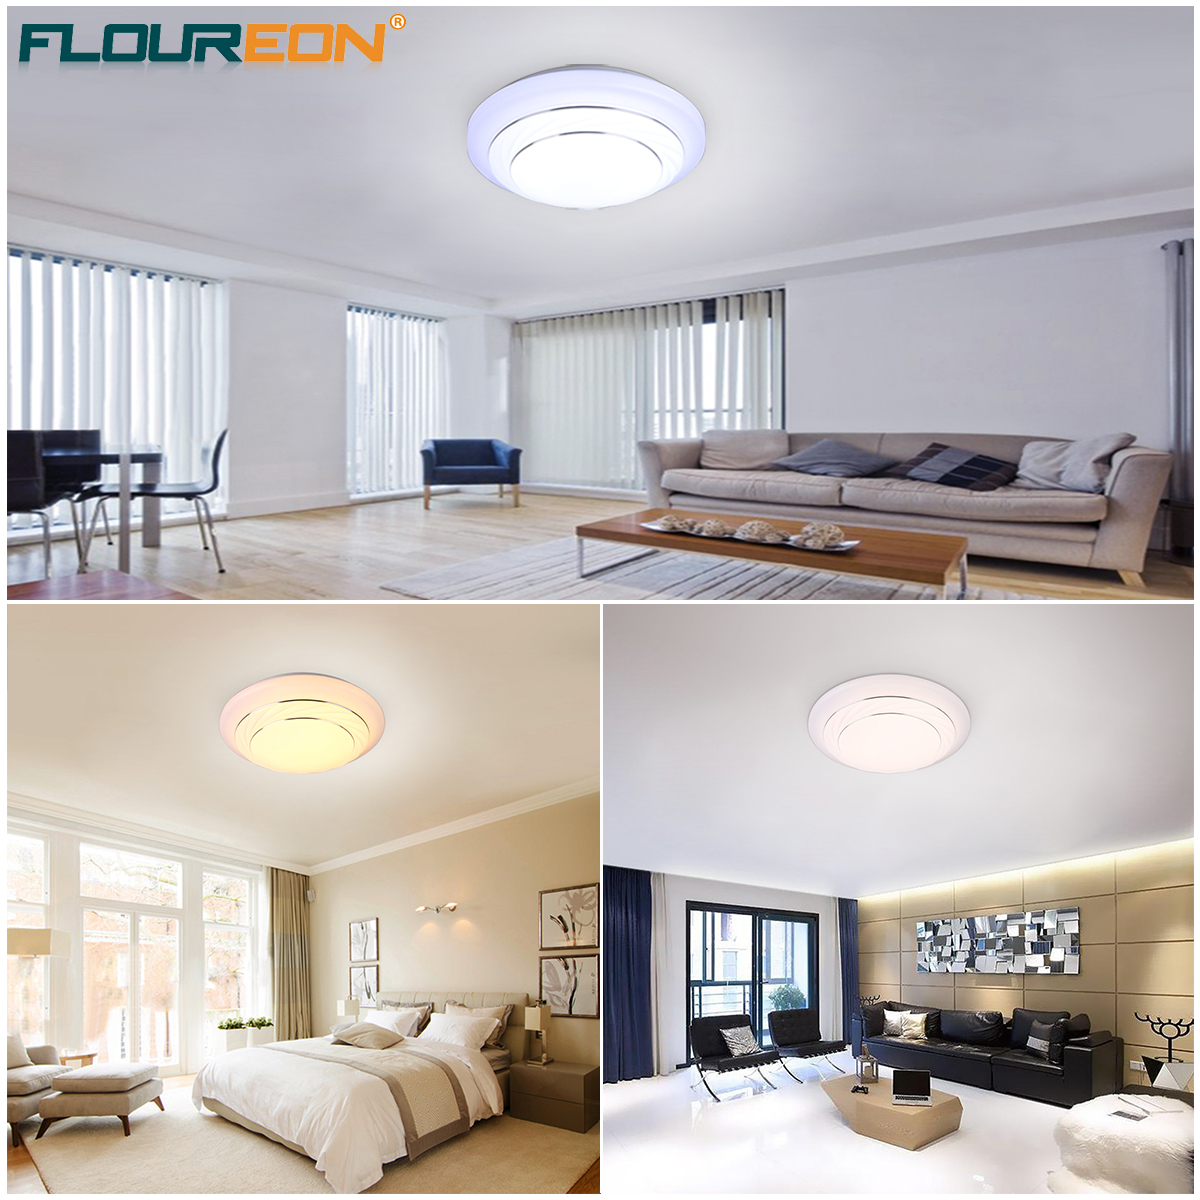 24W Round LED Ceiling Light Flush Mount Fixture for Indoor Home ...